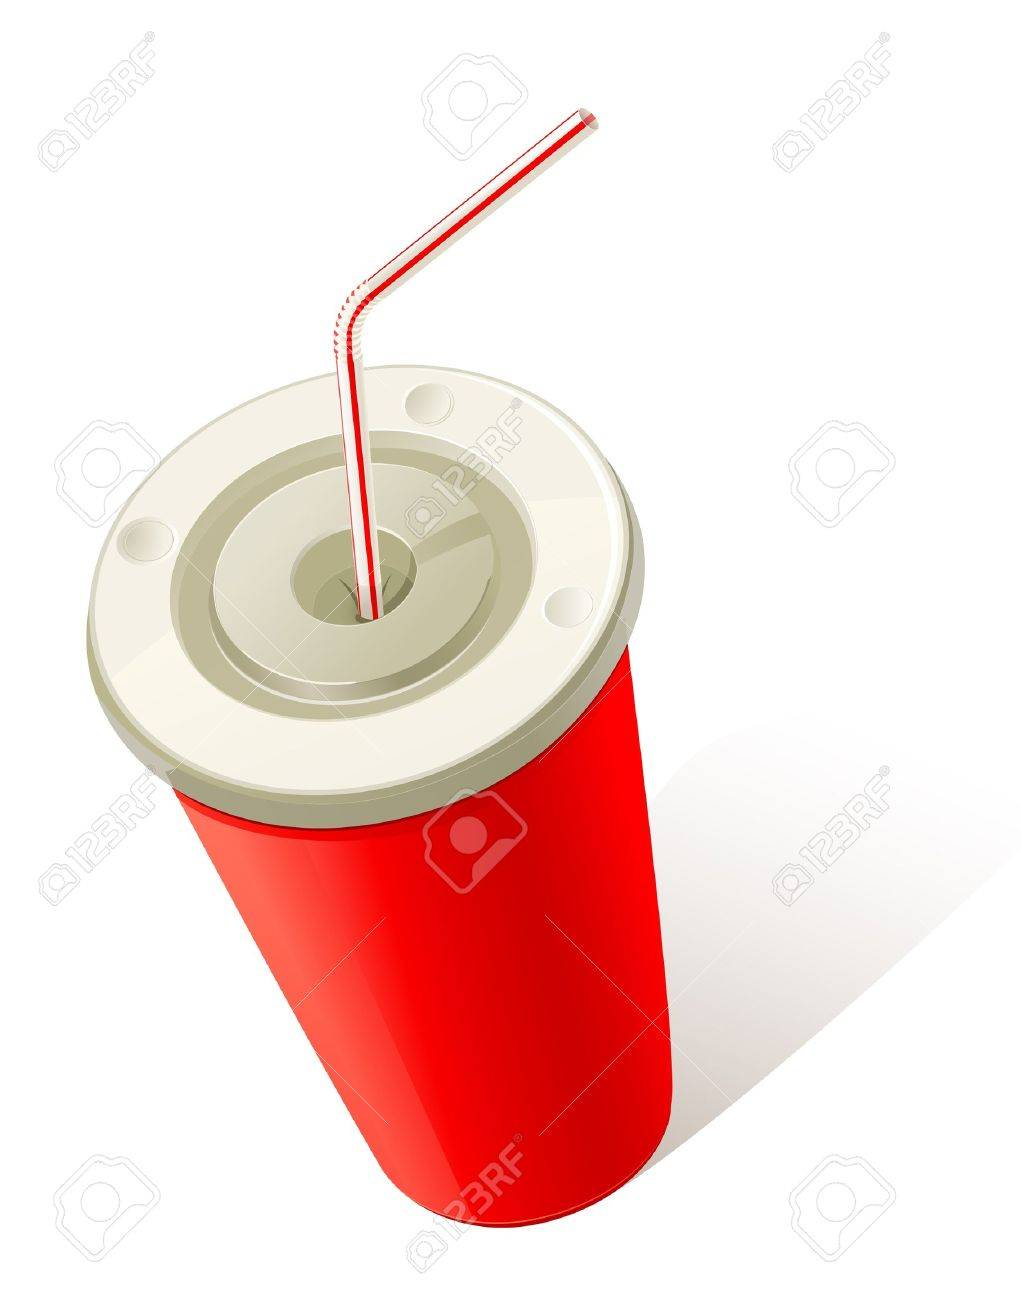 Red Cold Drink Cup Stock Vector - 12826767